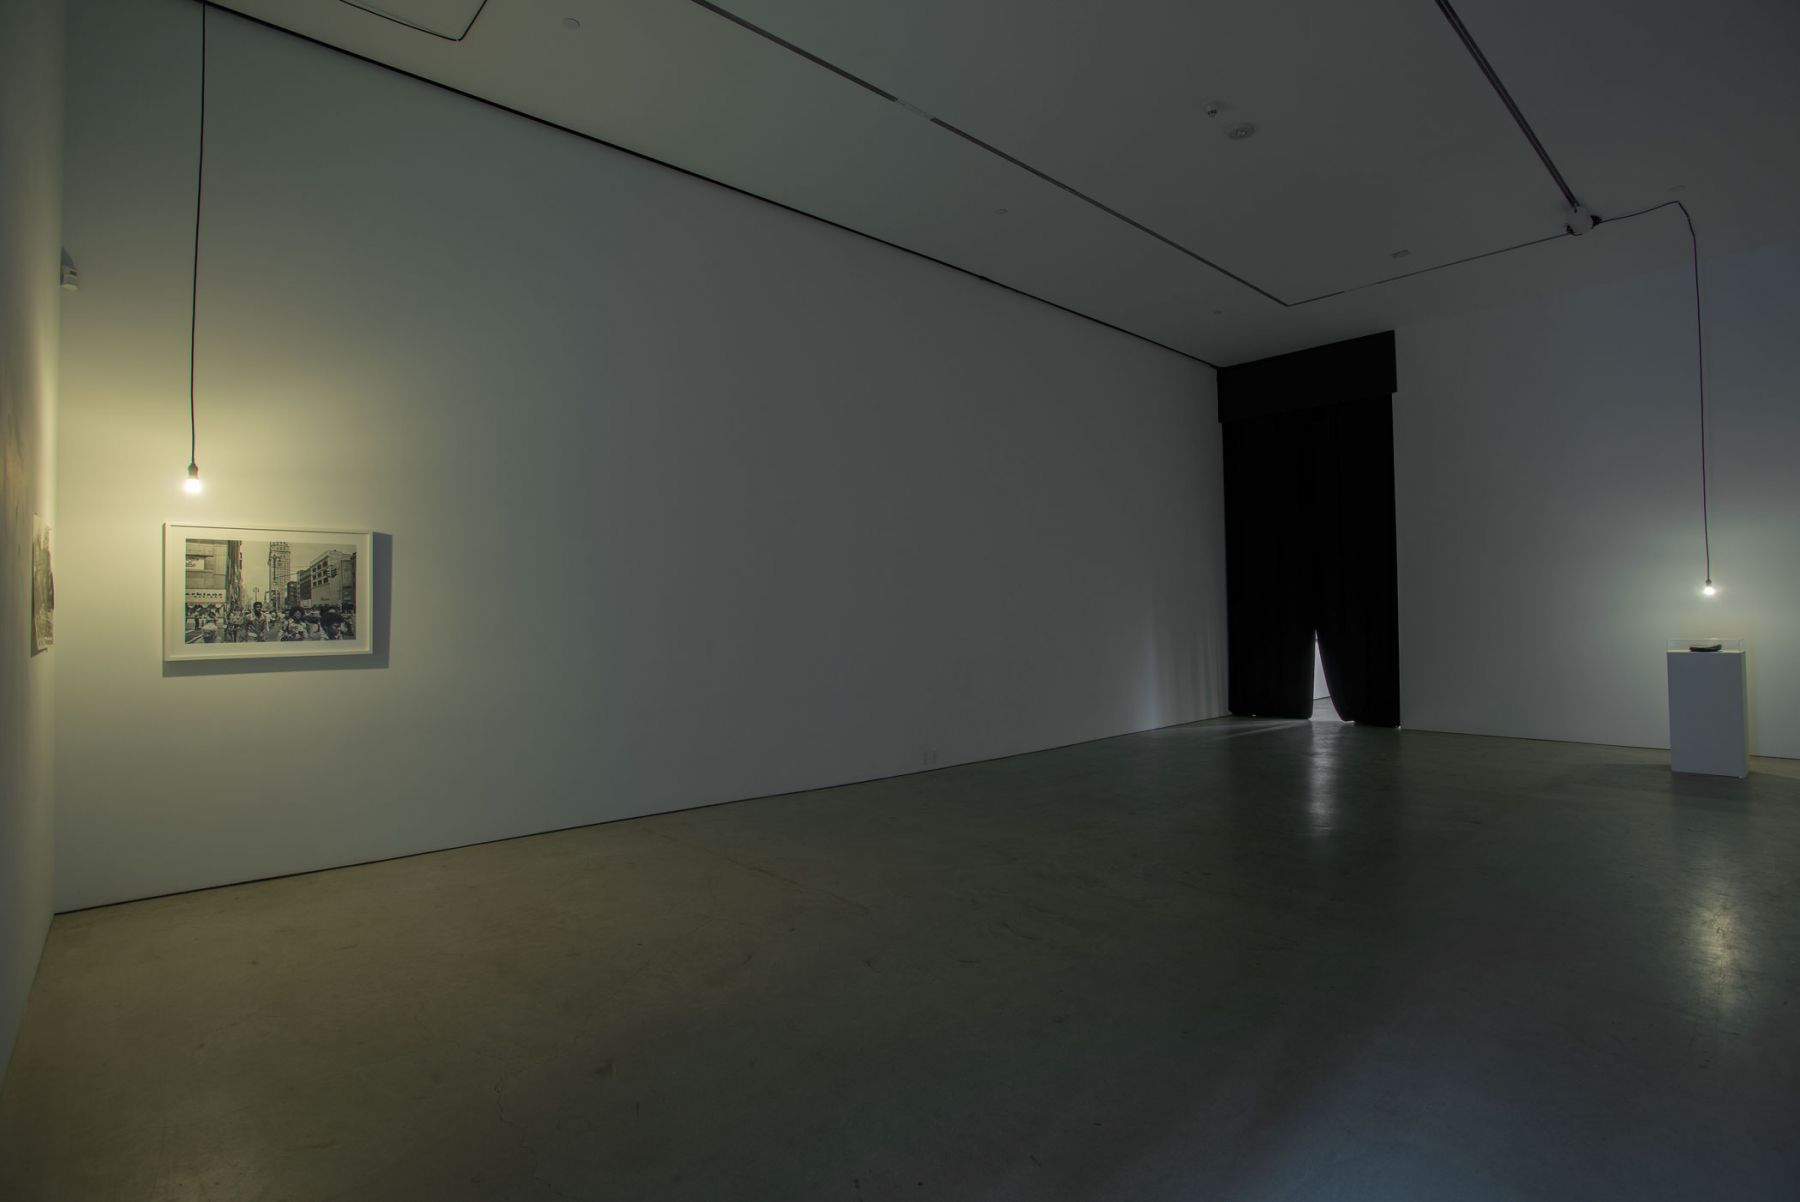 Another Look at Detroit(Installation View), Marianne Boesky Gallery, 2014